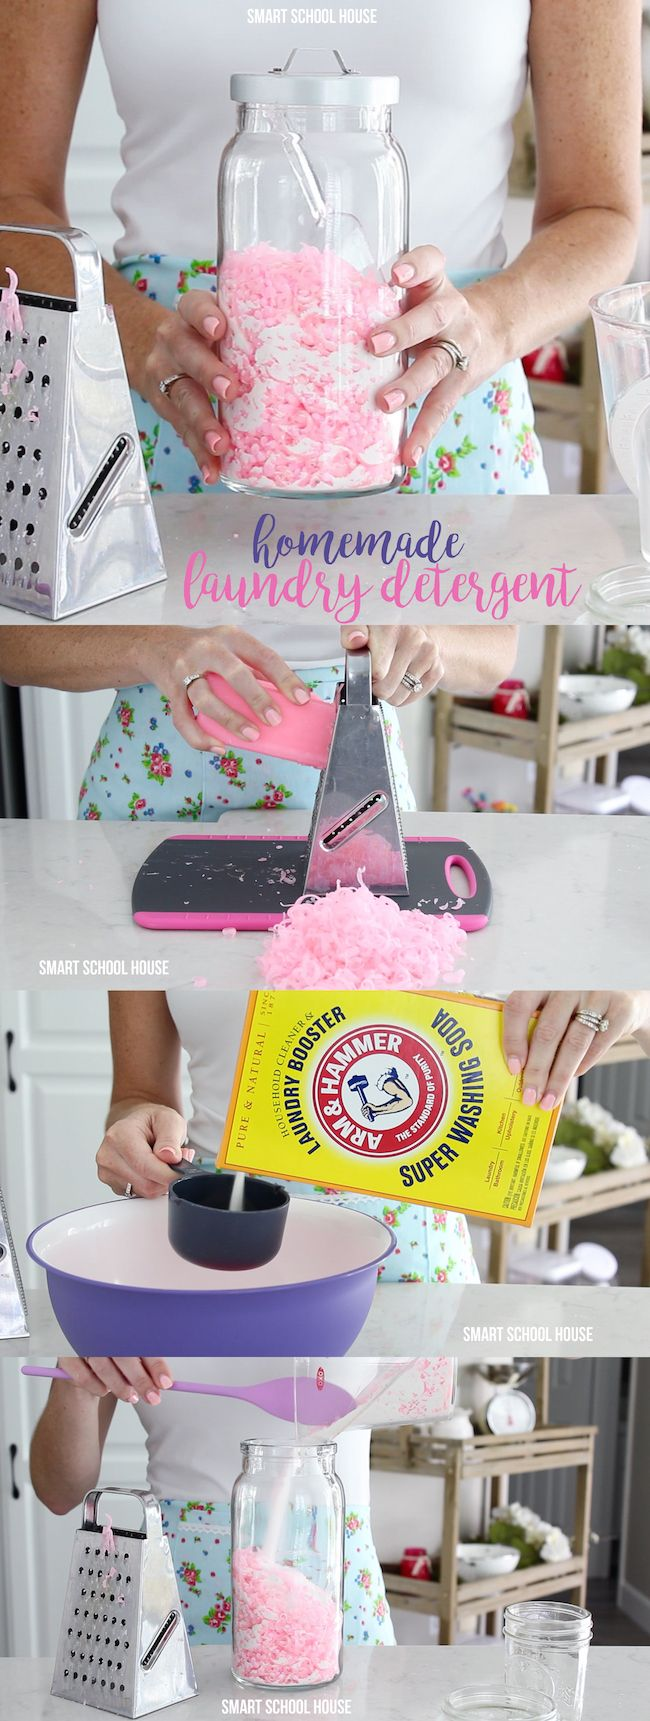 With just 3 ingredients, you can make lots of laundry soap and save a lot of money in the process! With this recipe, featuring ARM & HAMMER™ Super Washing Soda, each load of laundry will cost about 20¢ or 15¢.